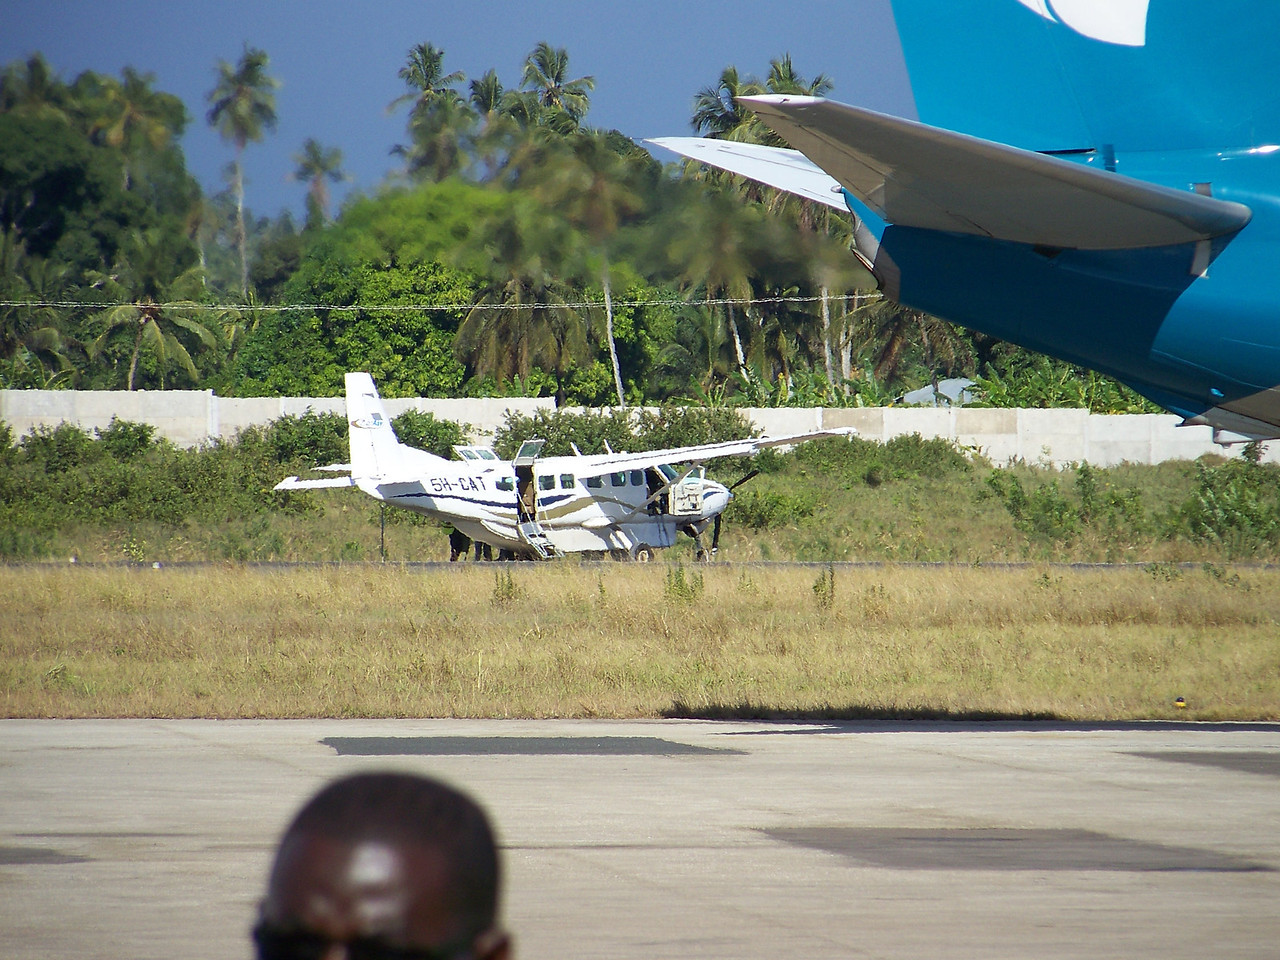 0986 - Disabled Plane Remains on Runway at the Zanzibar Intl Airport - Zanzabar - Tanzania.JPG